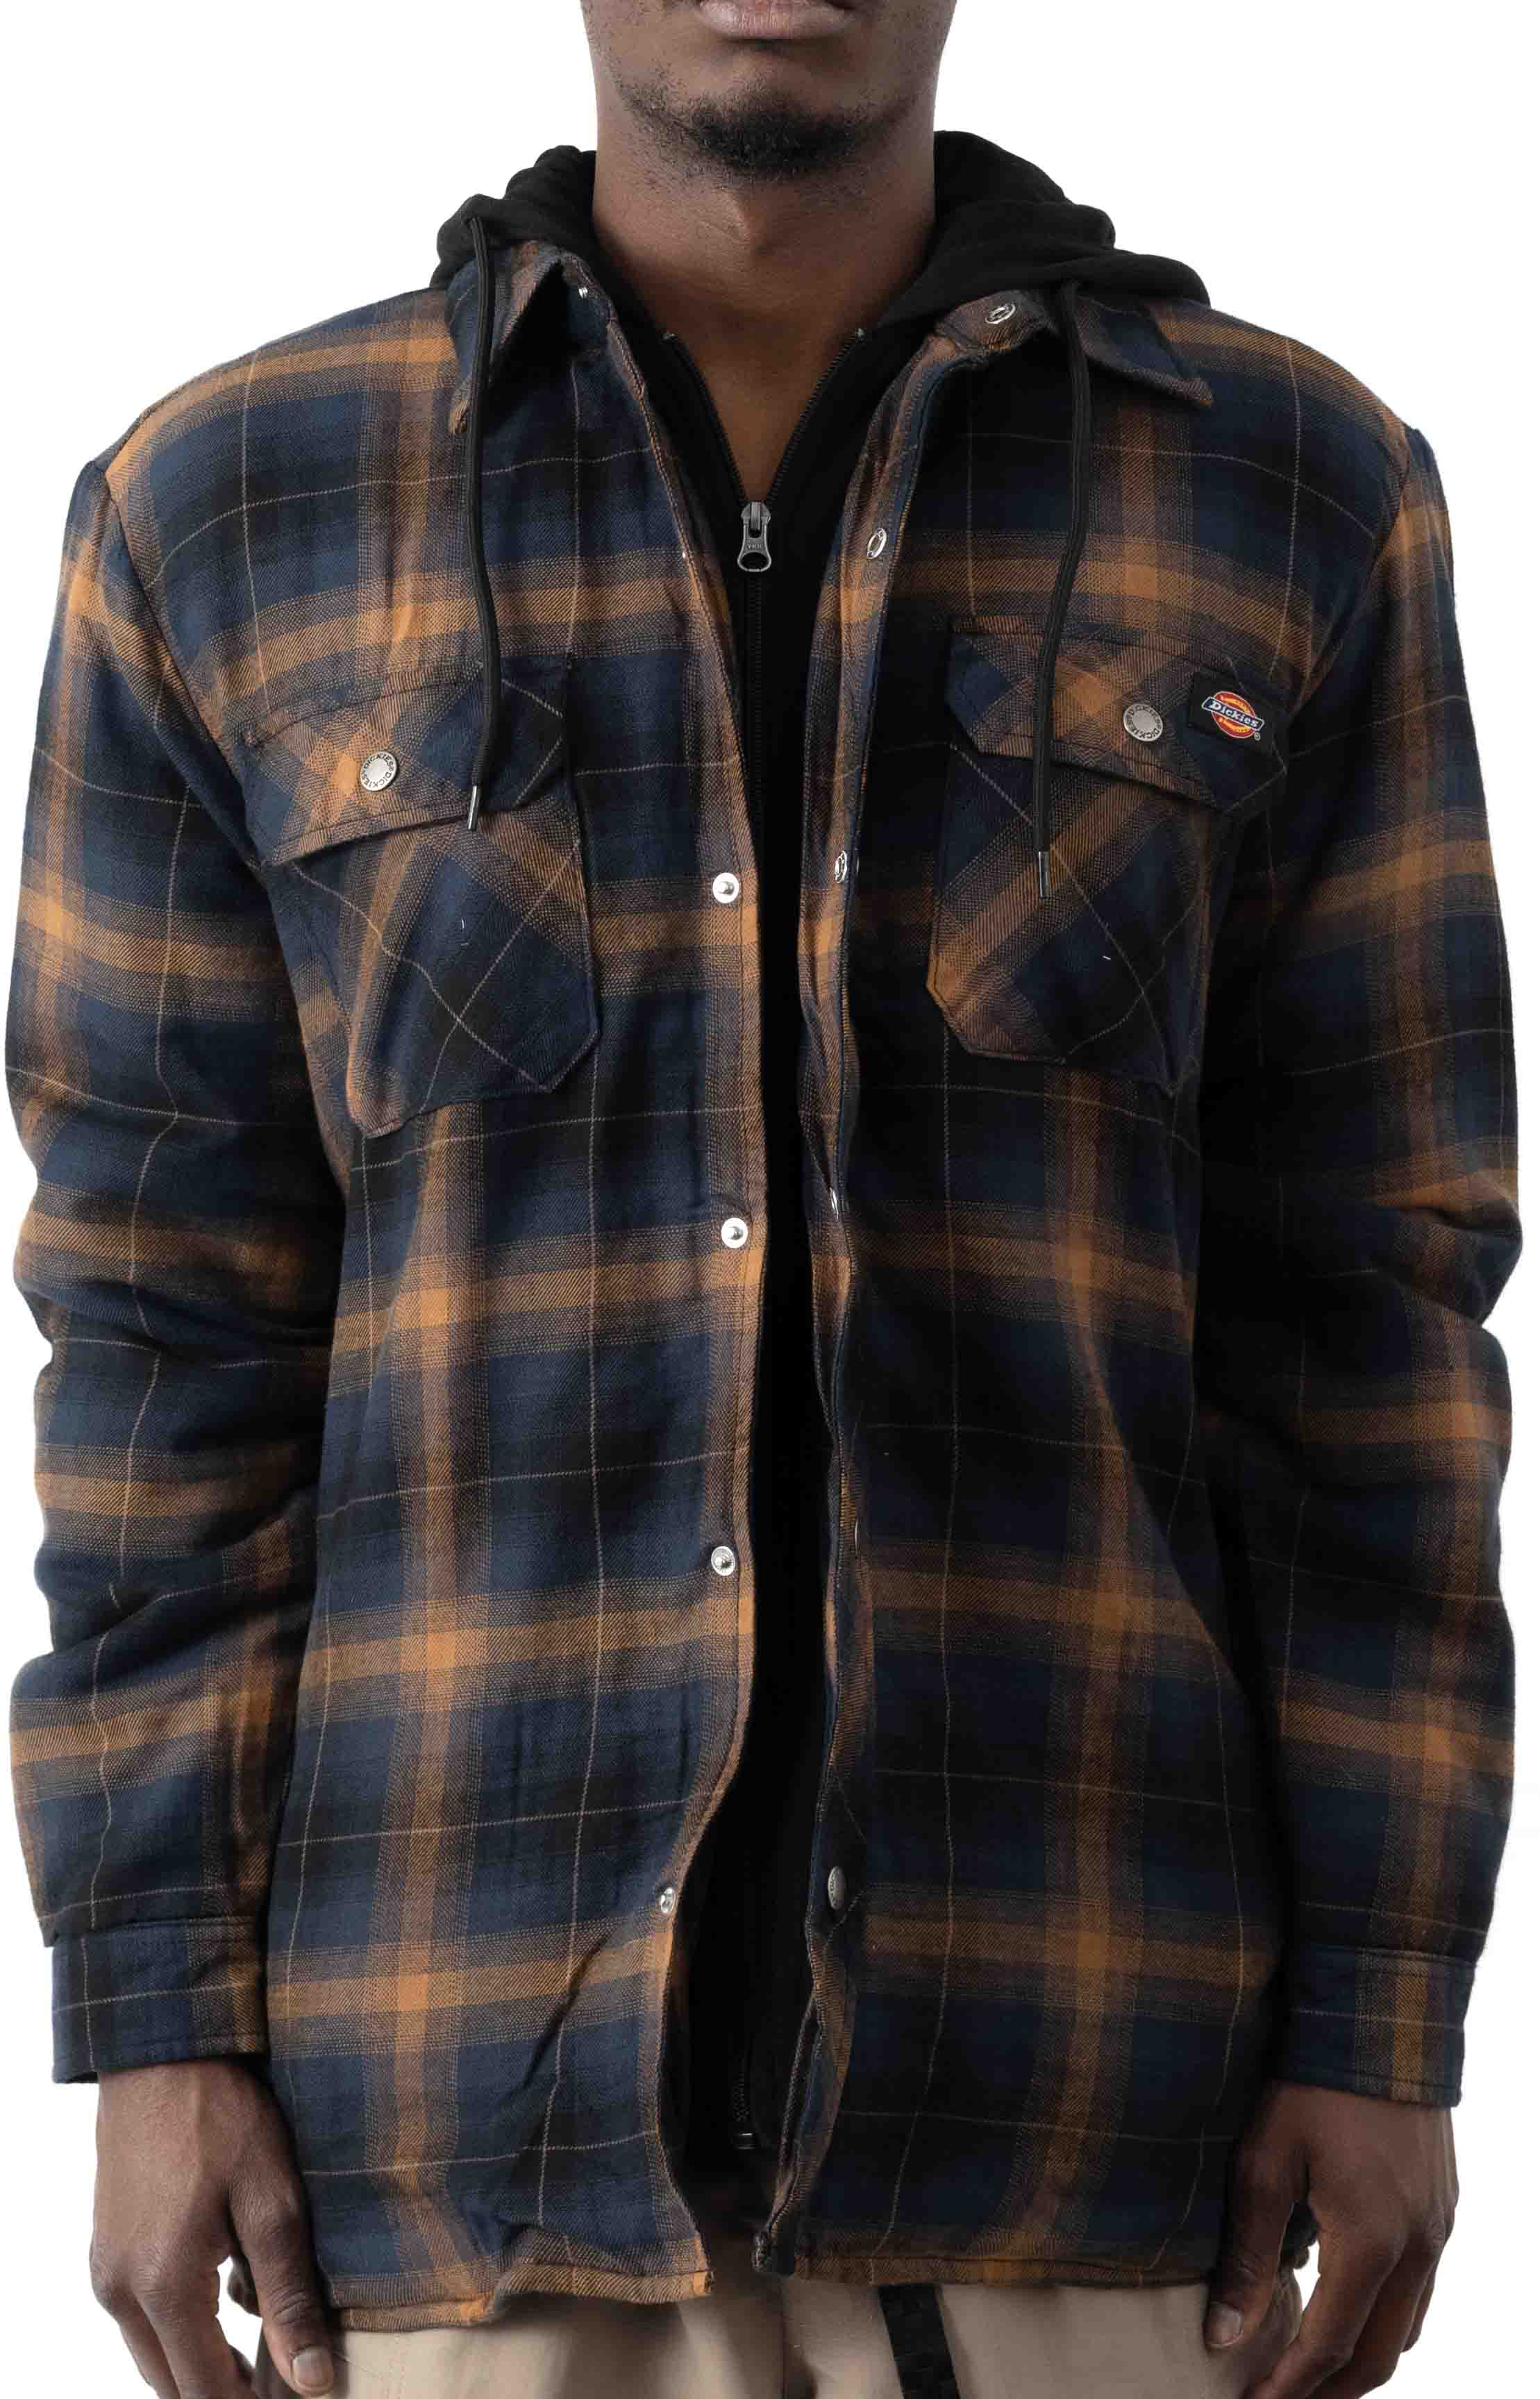 (TJ211IP1) Fleece Hooded Flannel Shirt Jacket with Hydroshield - Ink Navy Brown Ombre Plaid